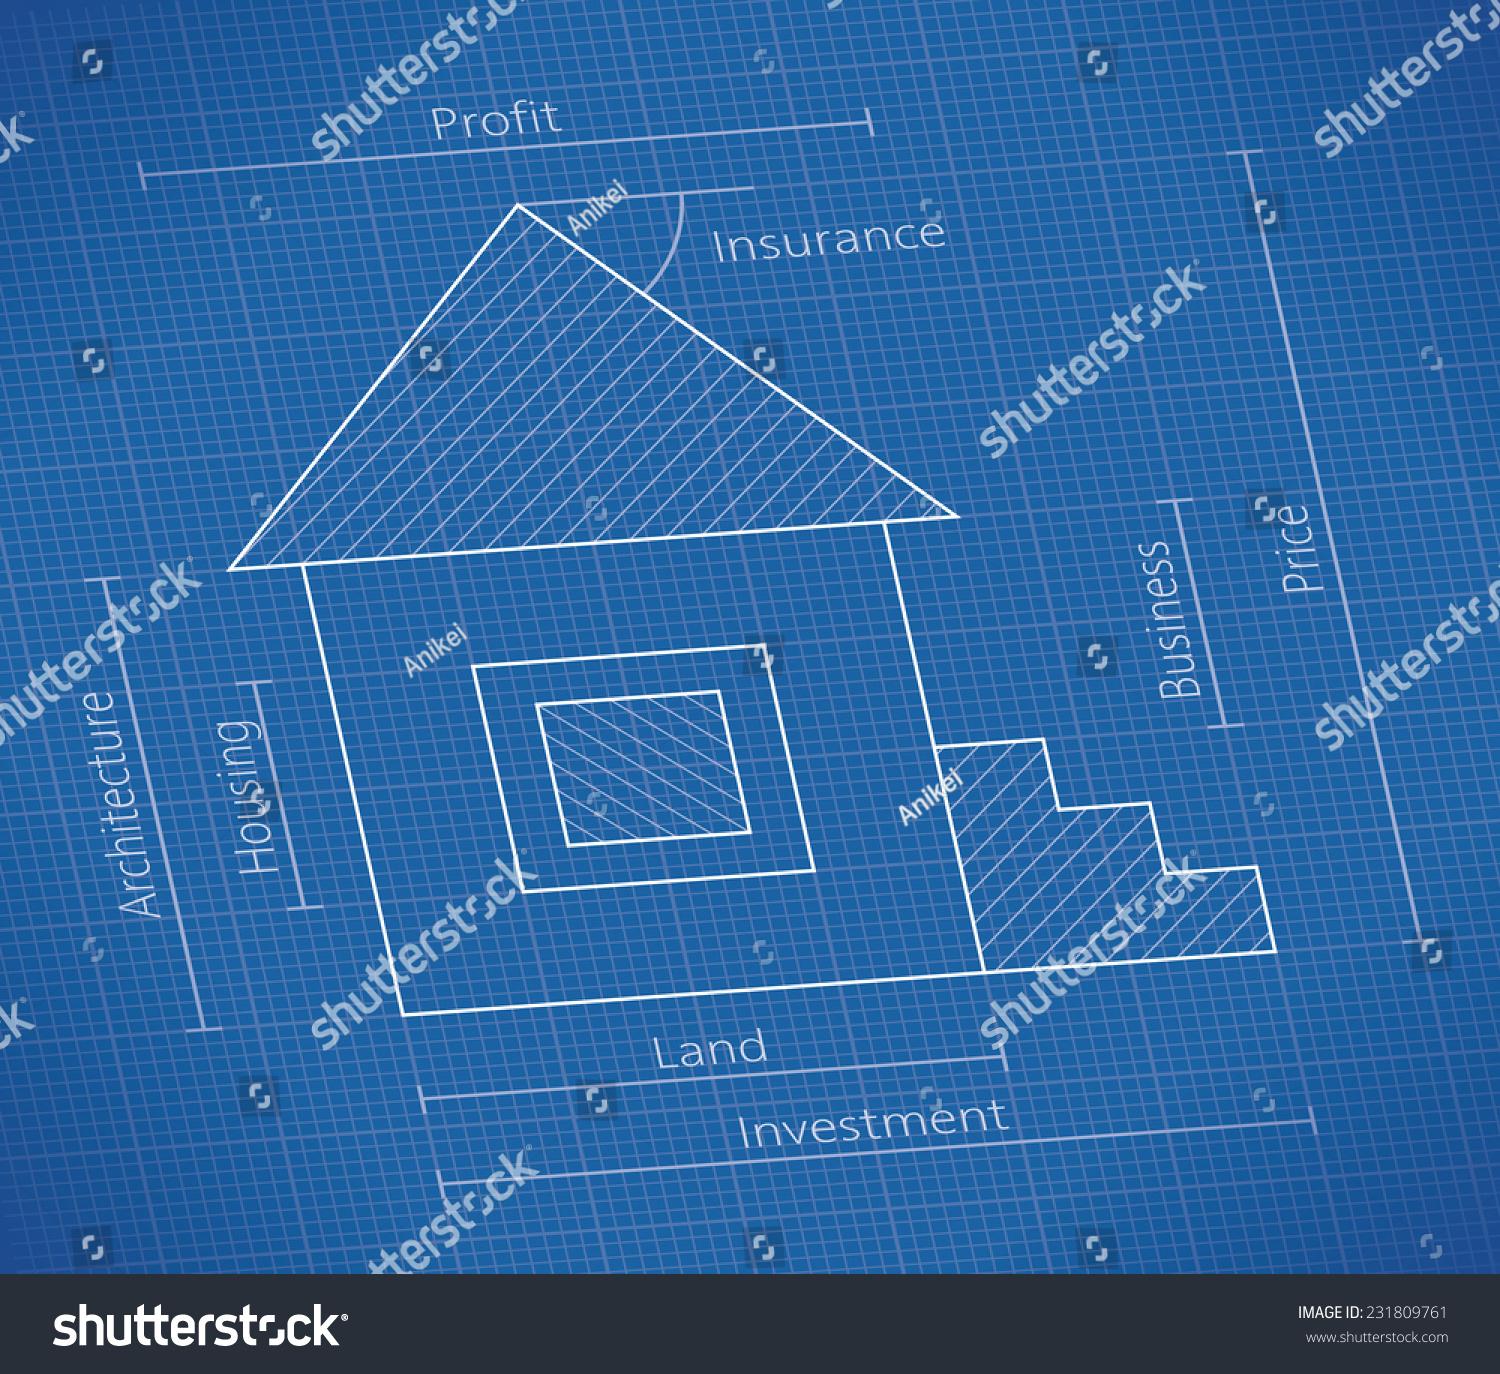 Abstract real property blueprint house schematic stock vector abstract real property blueprint with house schematic and investment price land business malvernweather Gallery